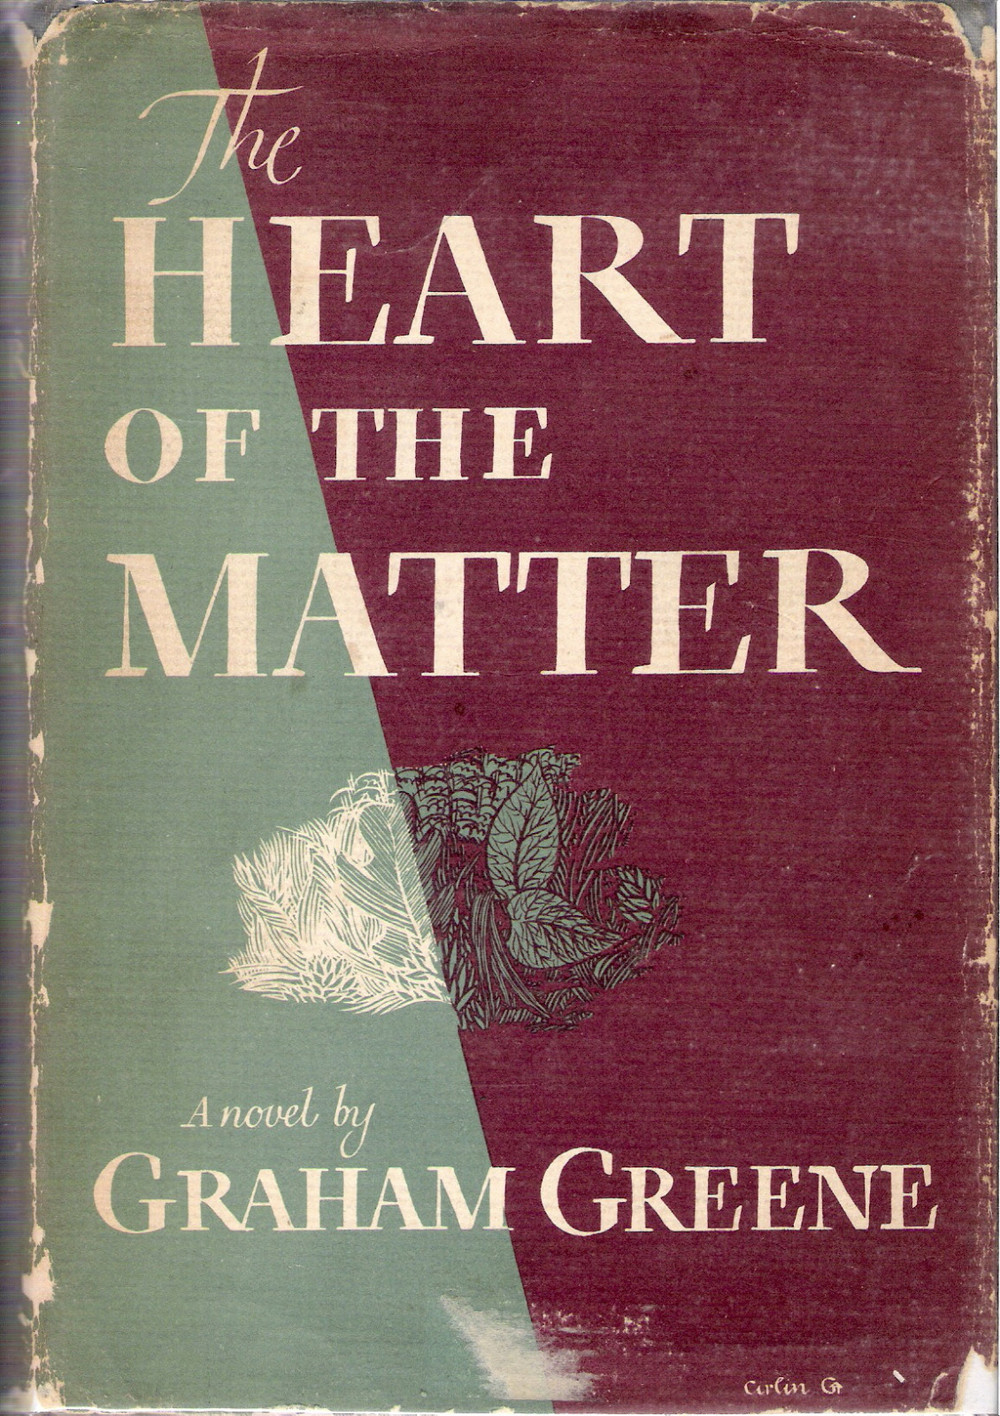 The Heart of the Matter 1948 via ebay